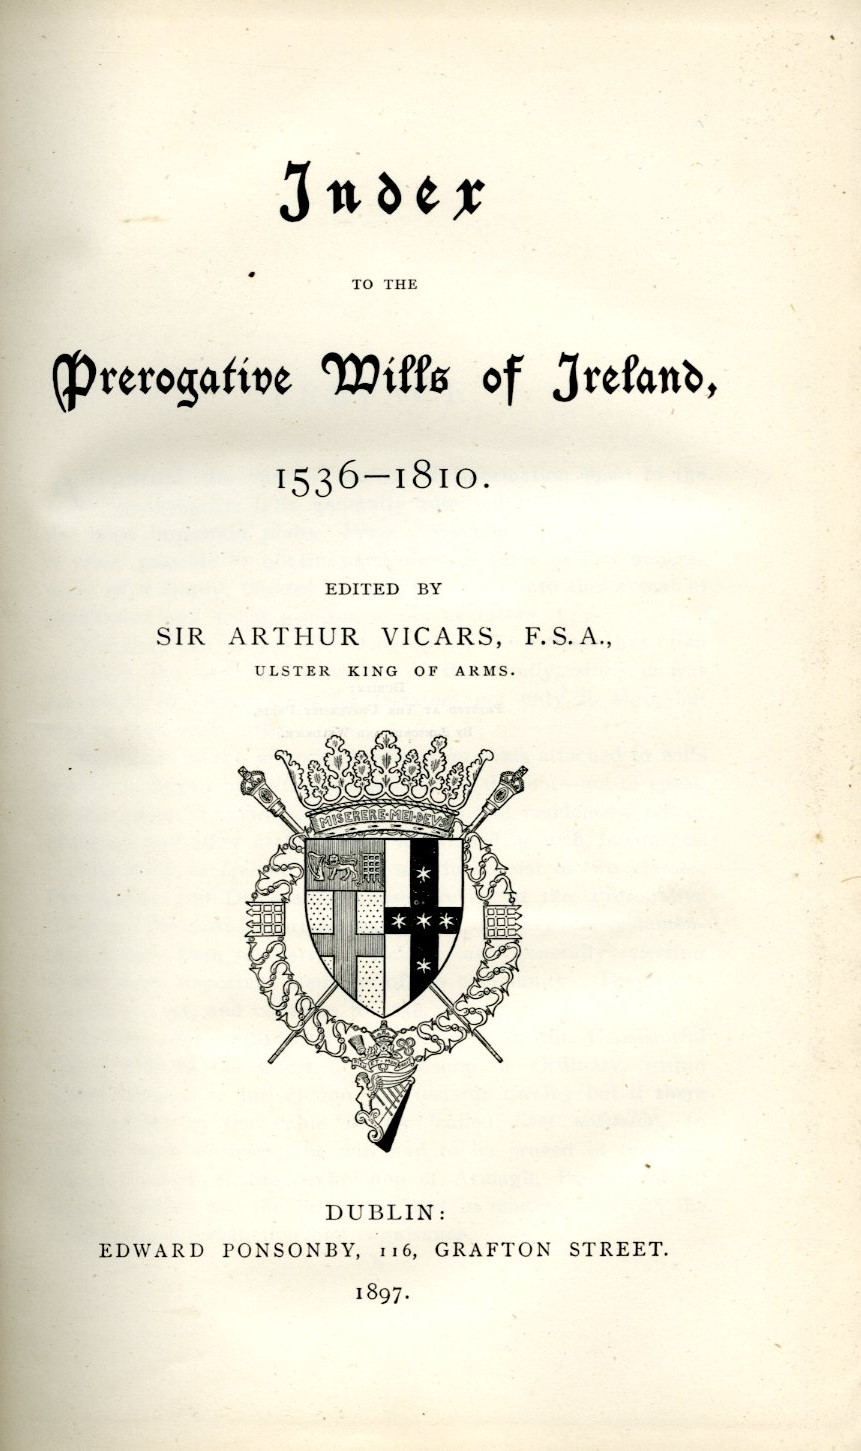 Vicars (Sir A.) Index to the Prerogative Wills of Ireland, 1536 - 1810, roy 8vo D. 1897. - Image 2 of 3